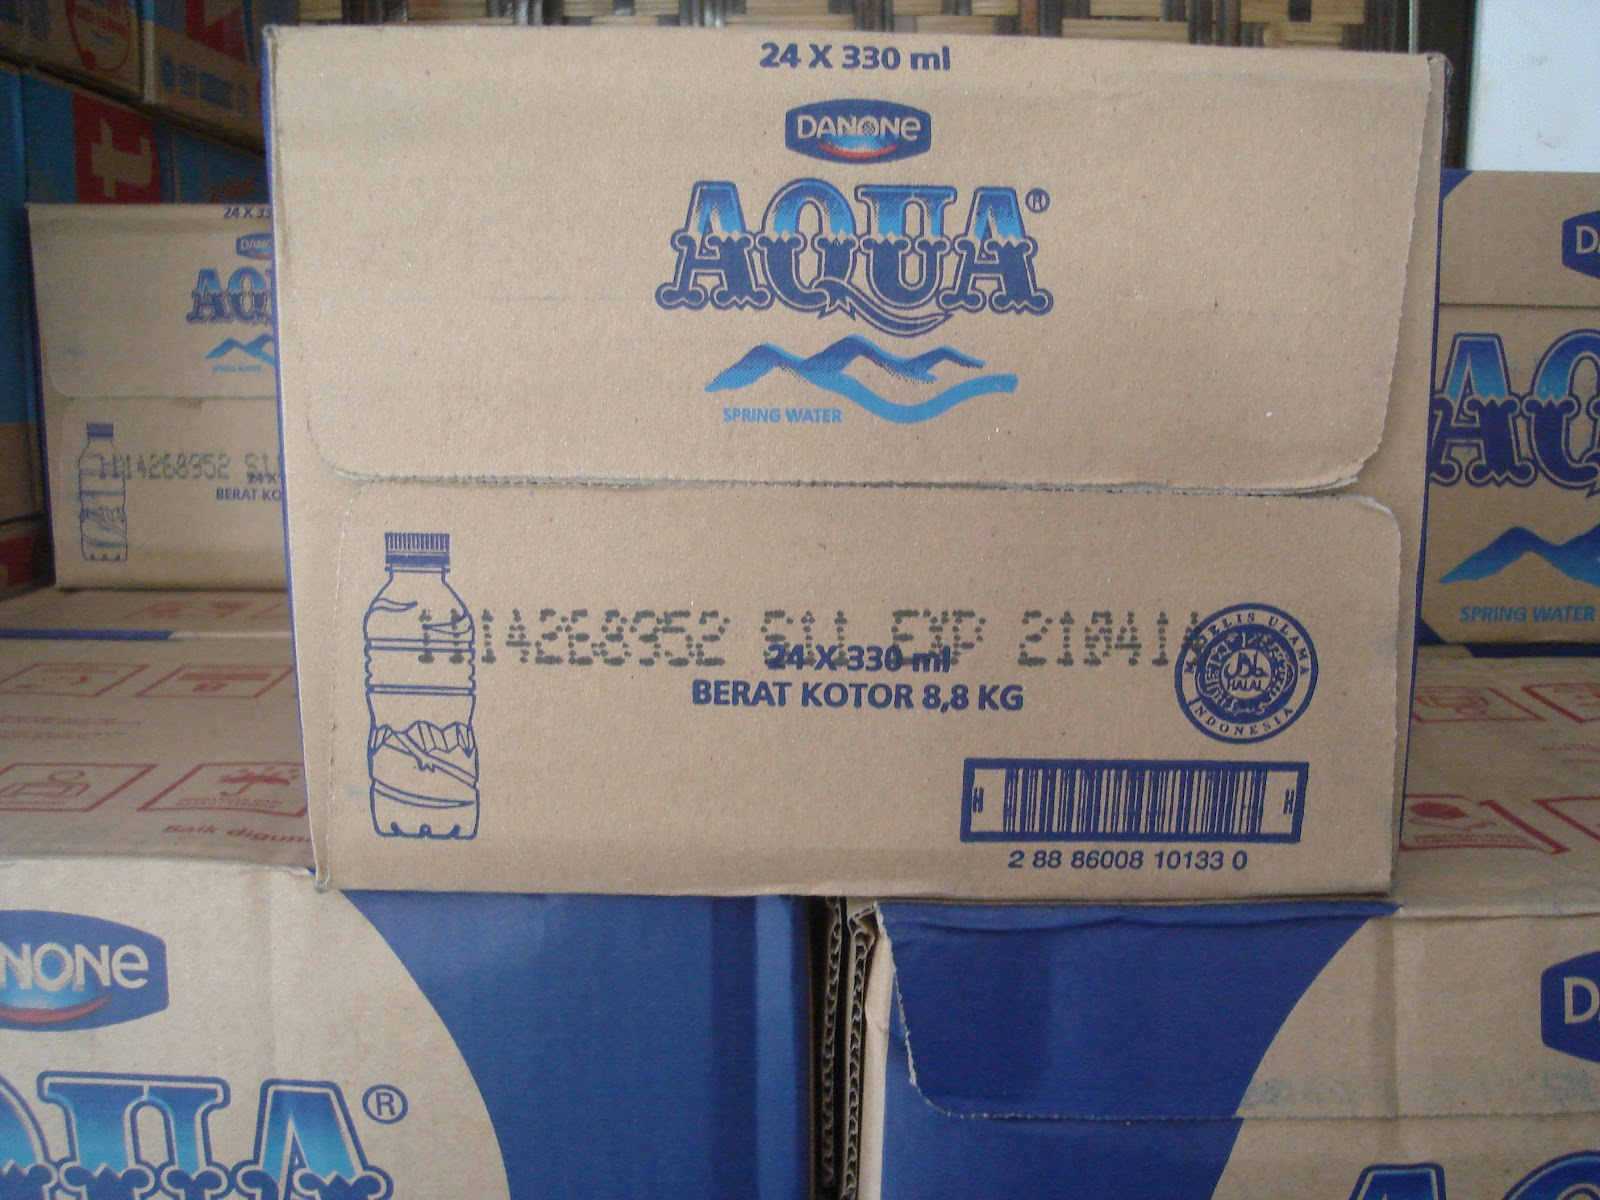 1 Galon Berapa Liter Aqua Home Service Baskoro Aqua 330 Ml